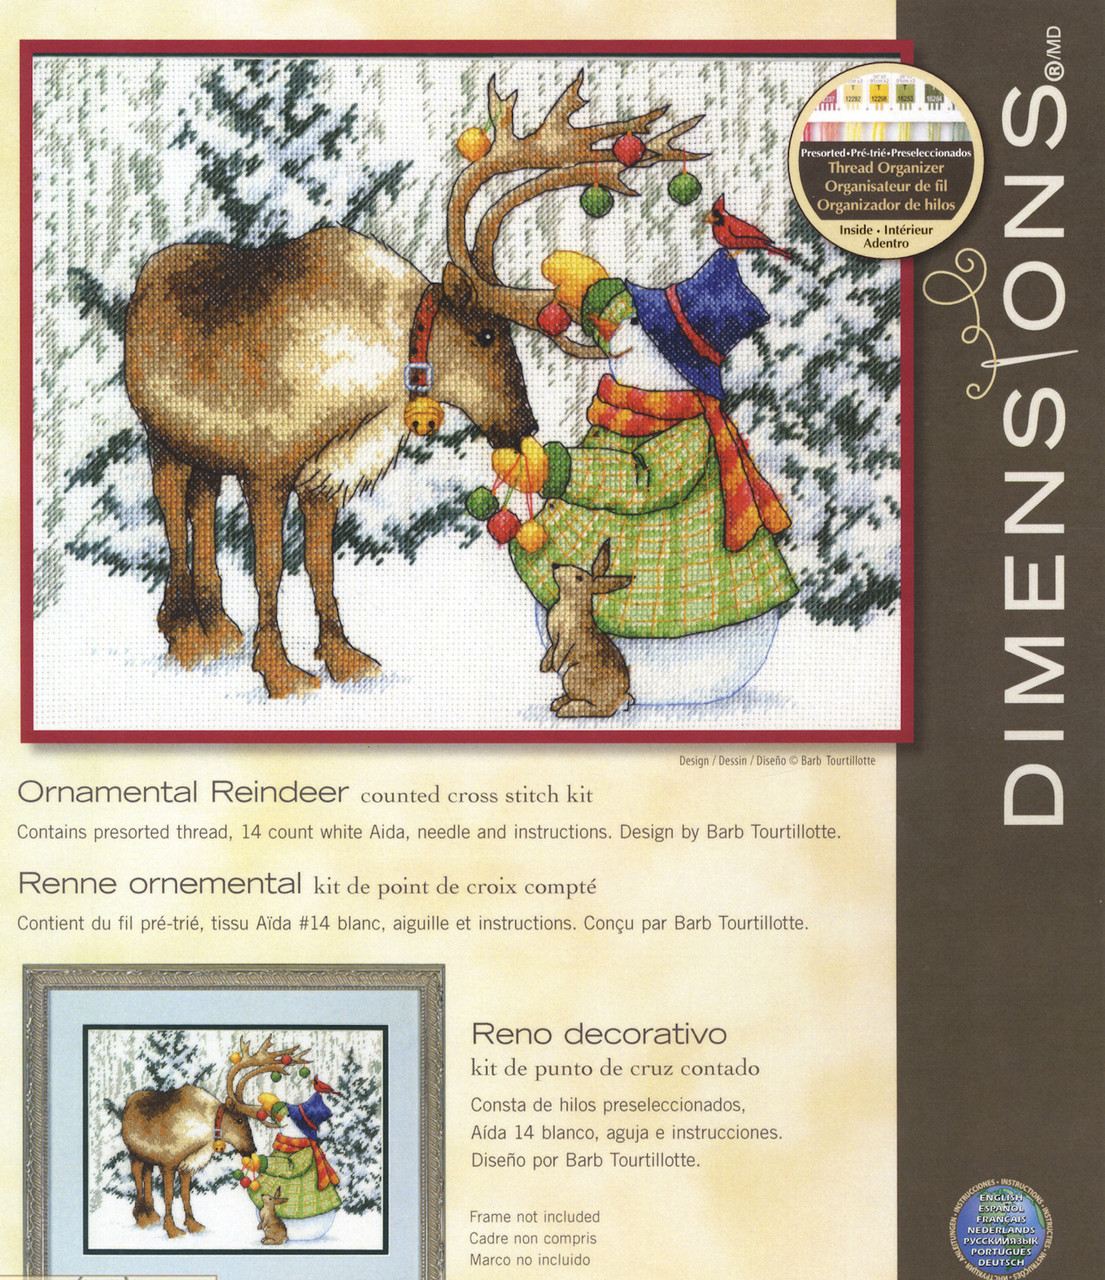 Dimensions - Ornamental Reindeer